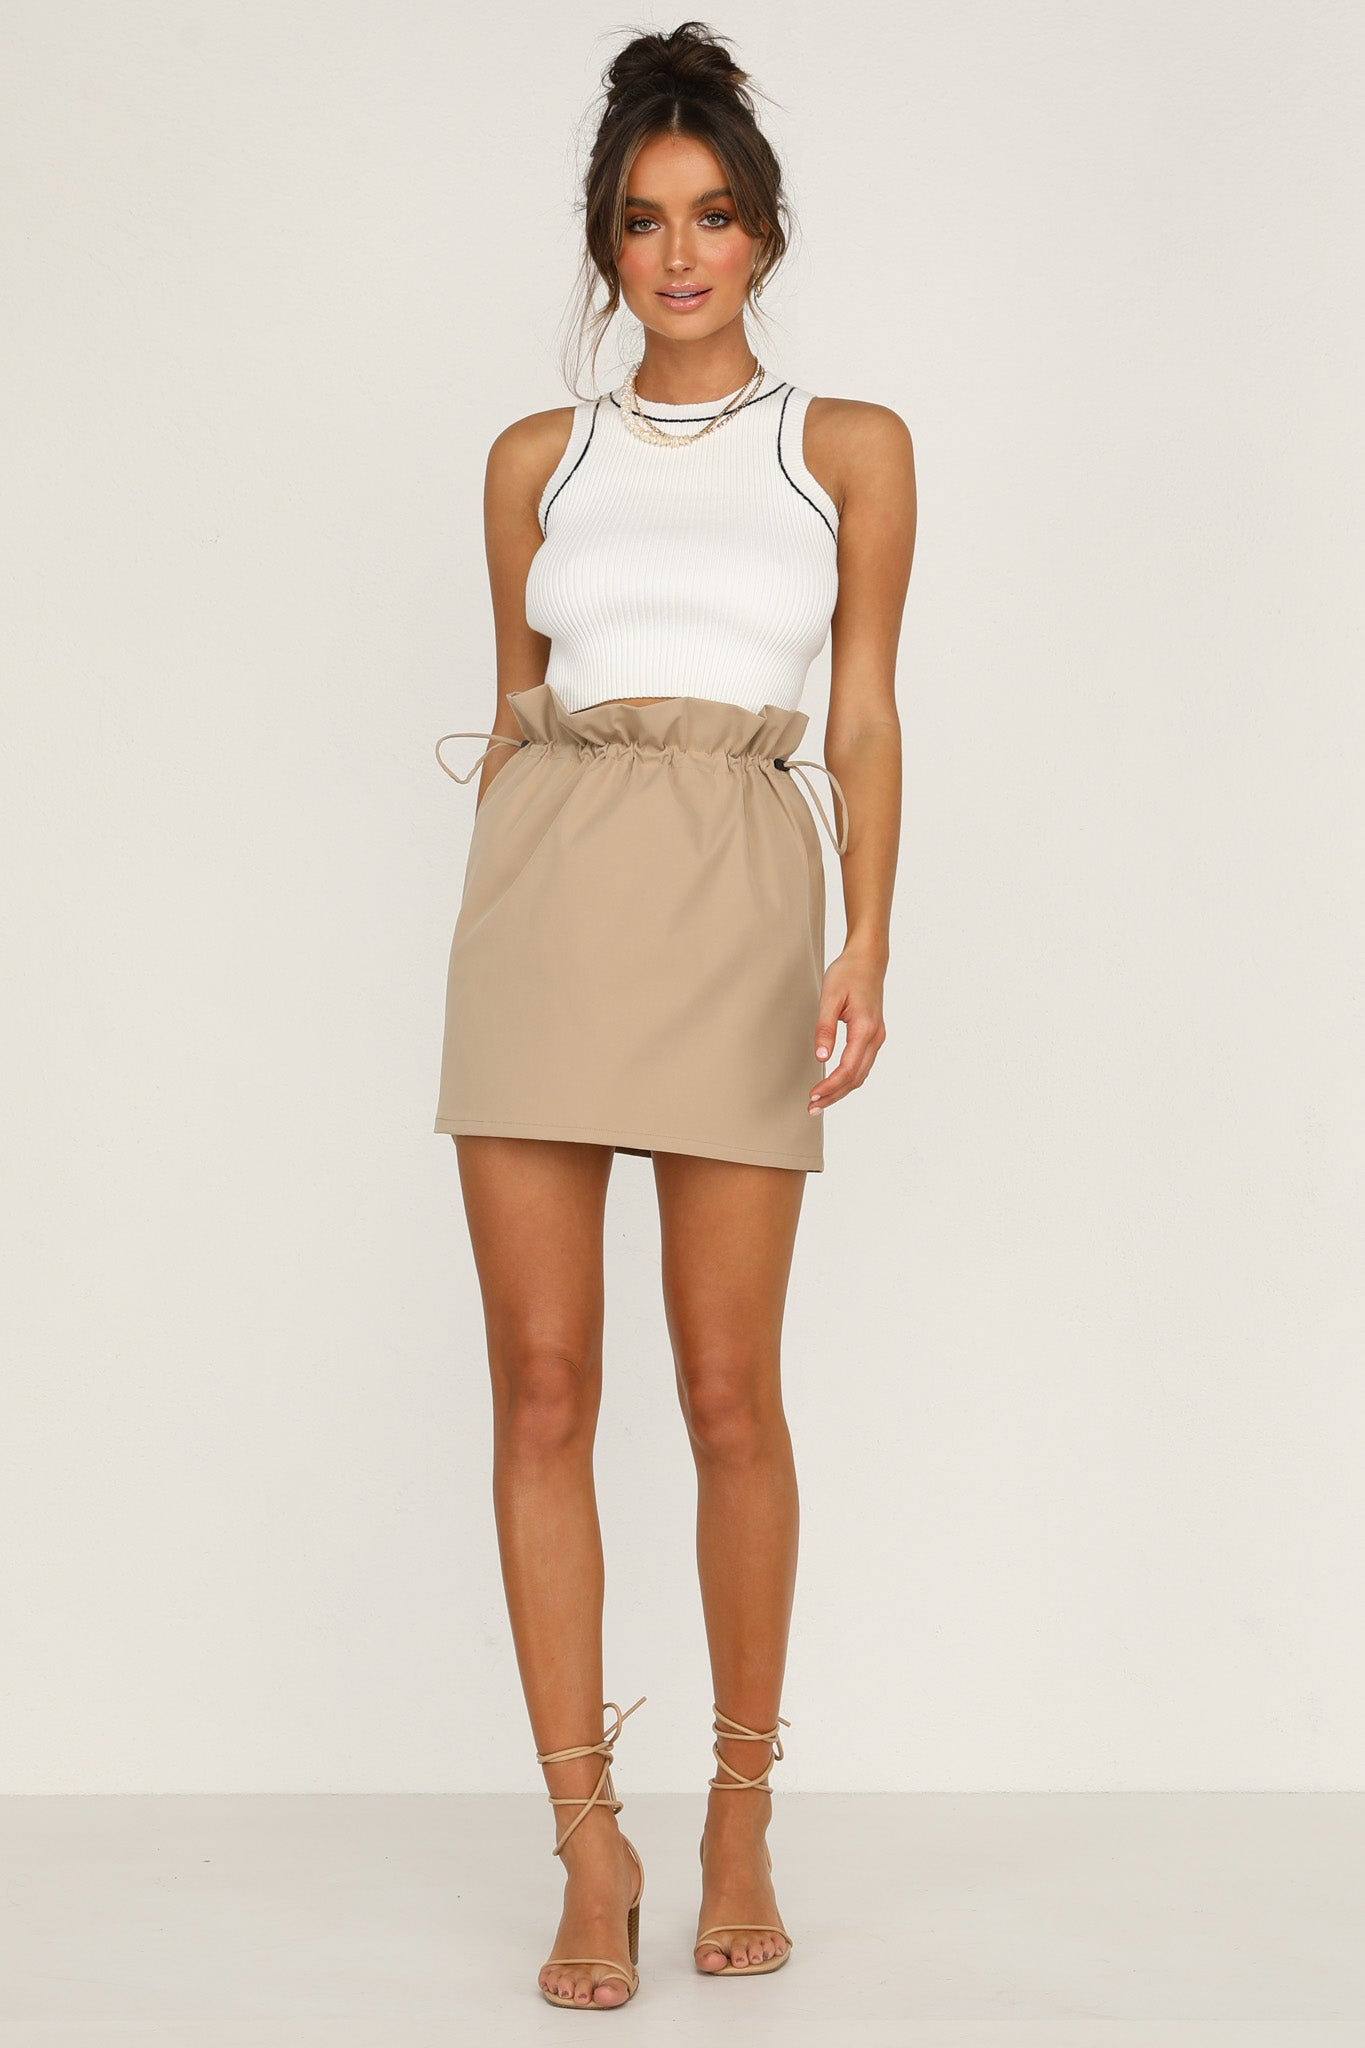 About Us Skirt